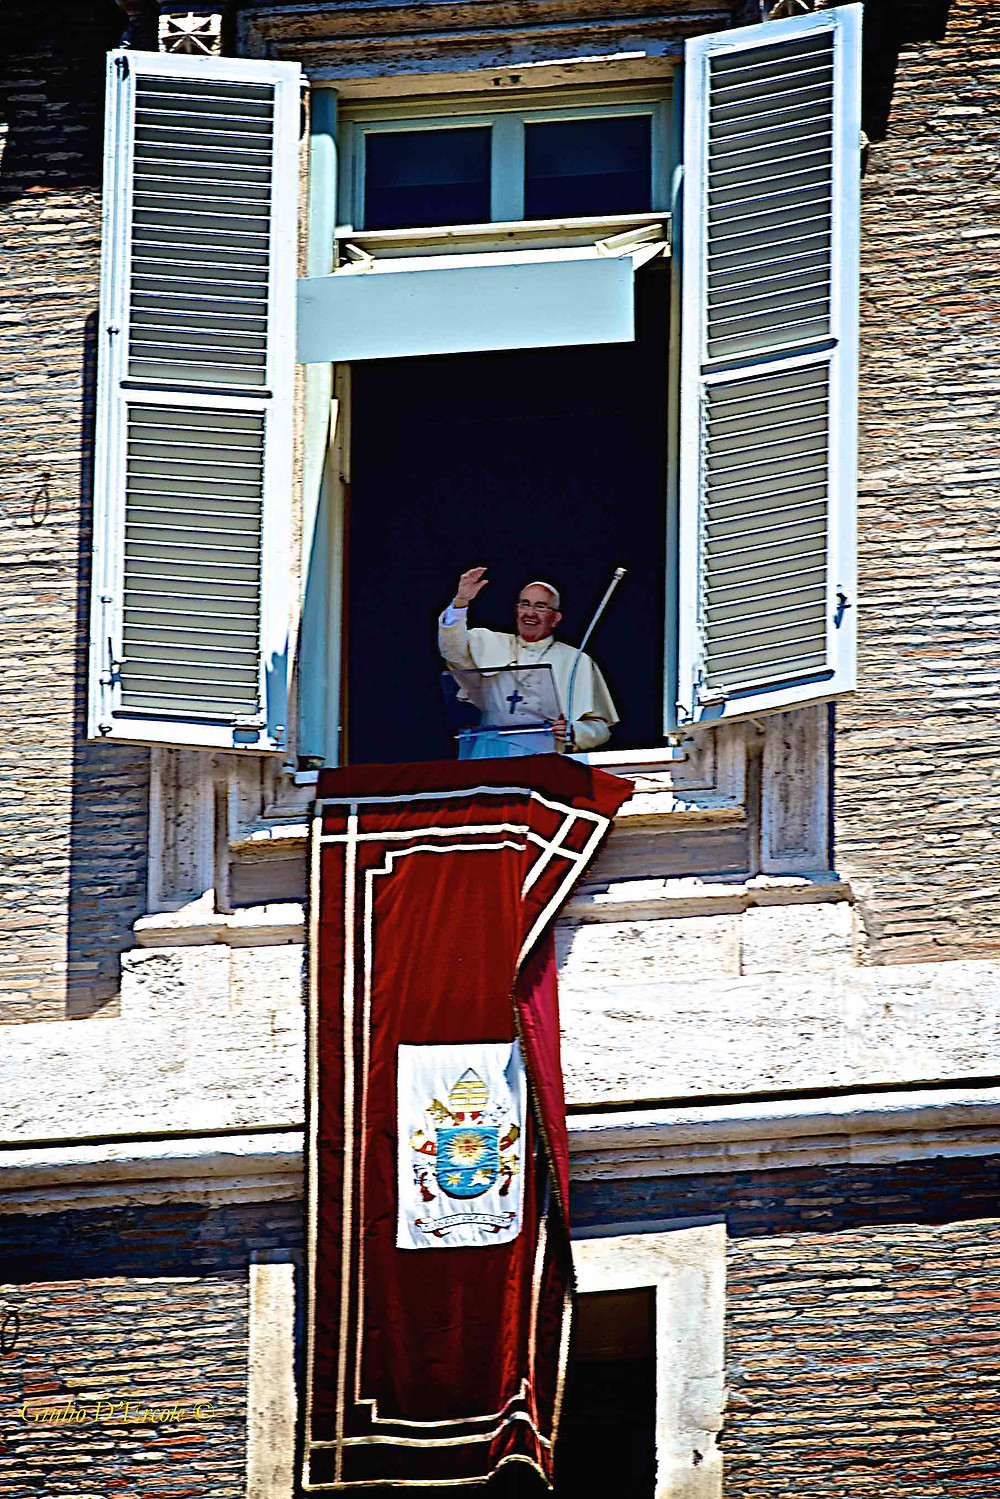 Pope Francis greets the crowd in St. Peter's Square. Photo by Giulio D'Ercole, Rome Photo Fun Tours on a Rome by Day Photo Tour